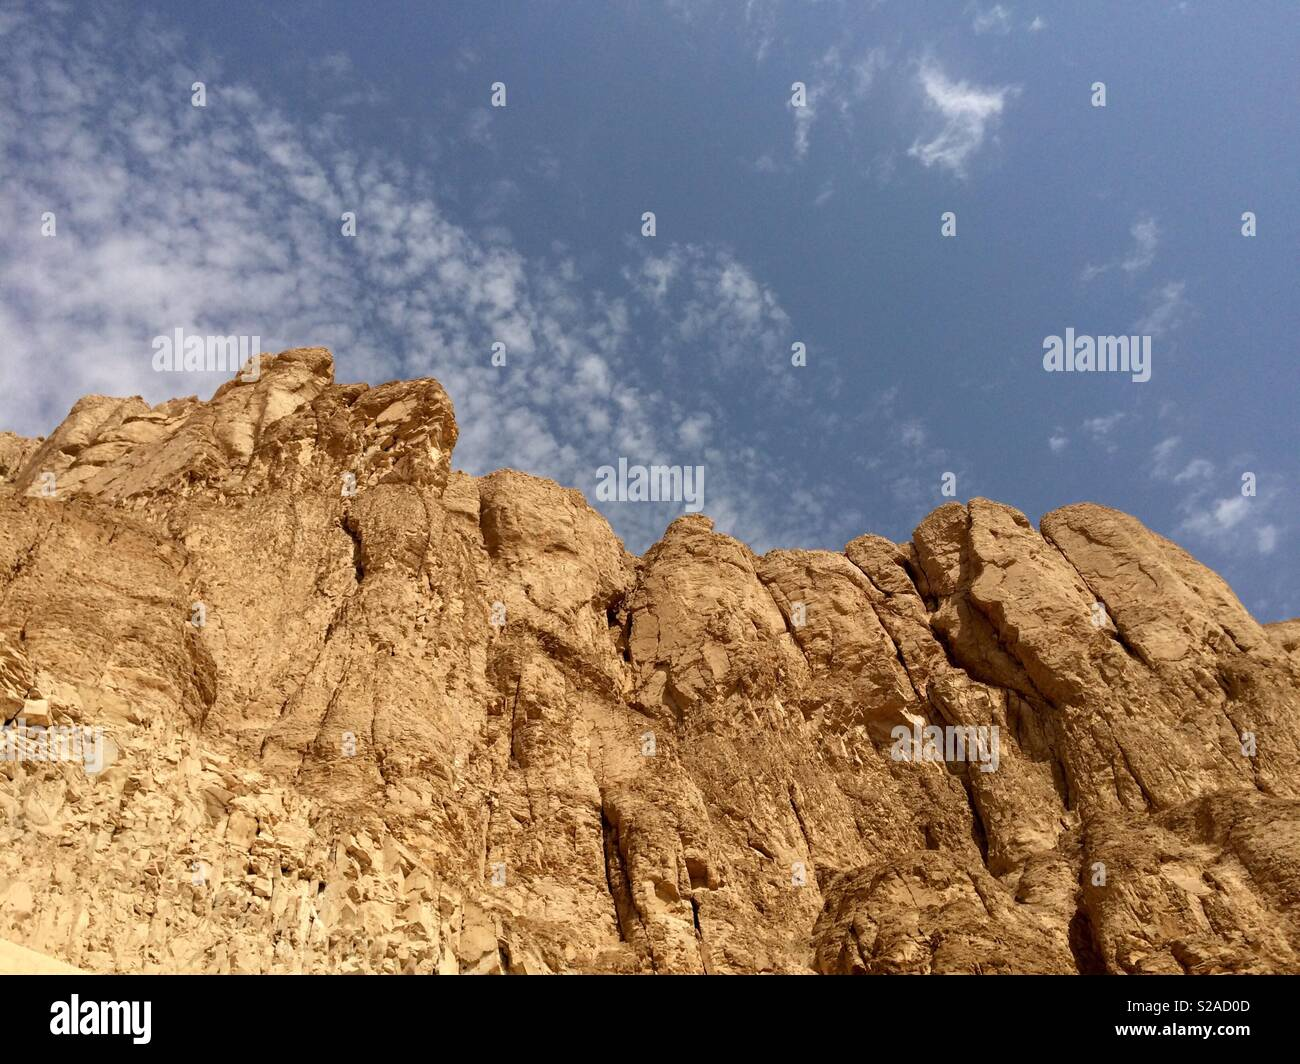 Cliffs of the Valley of the Kings - Stock Image